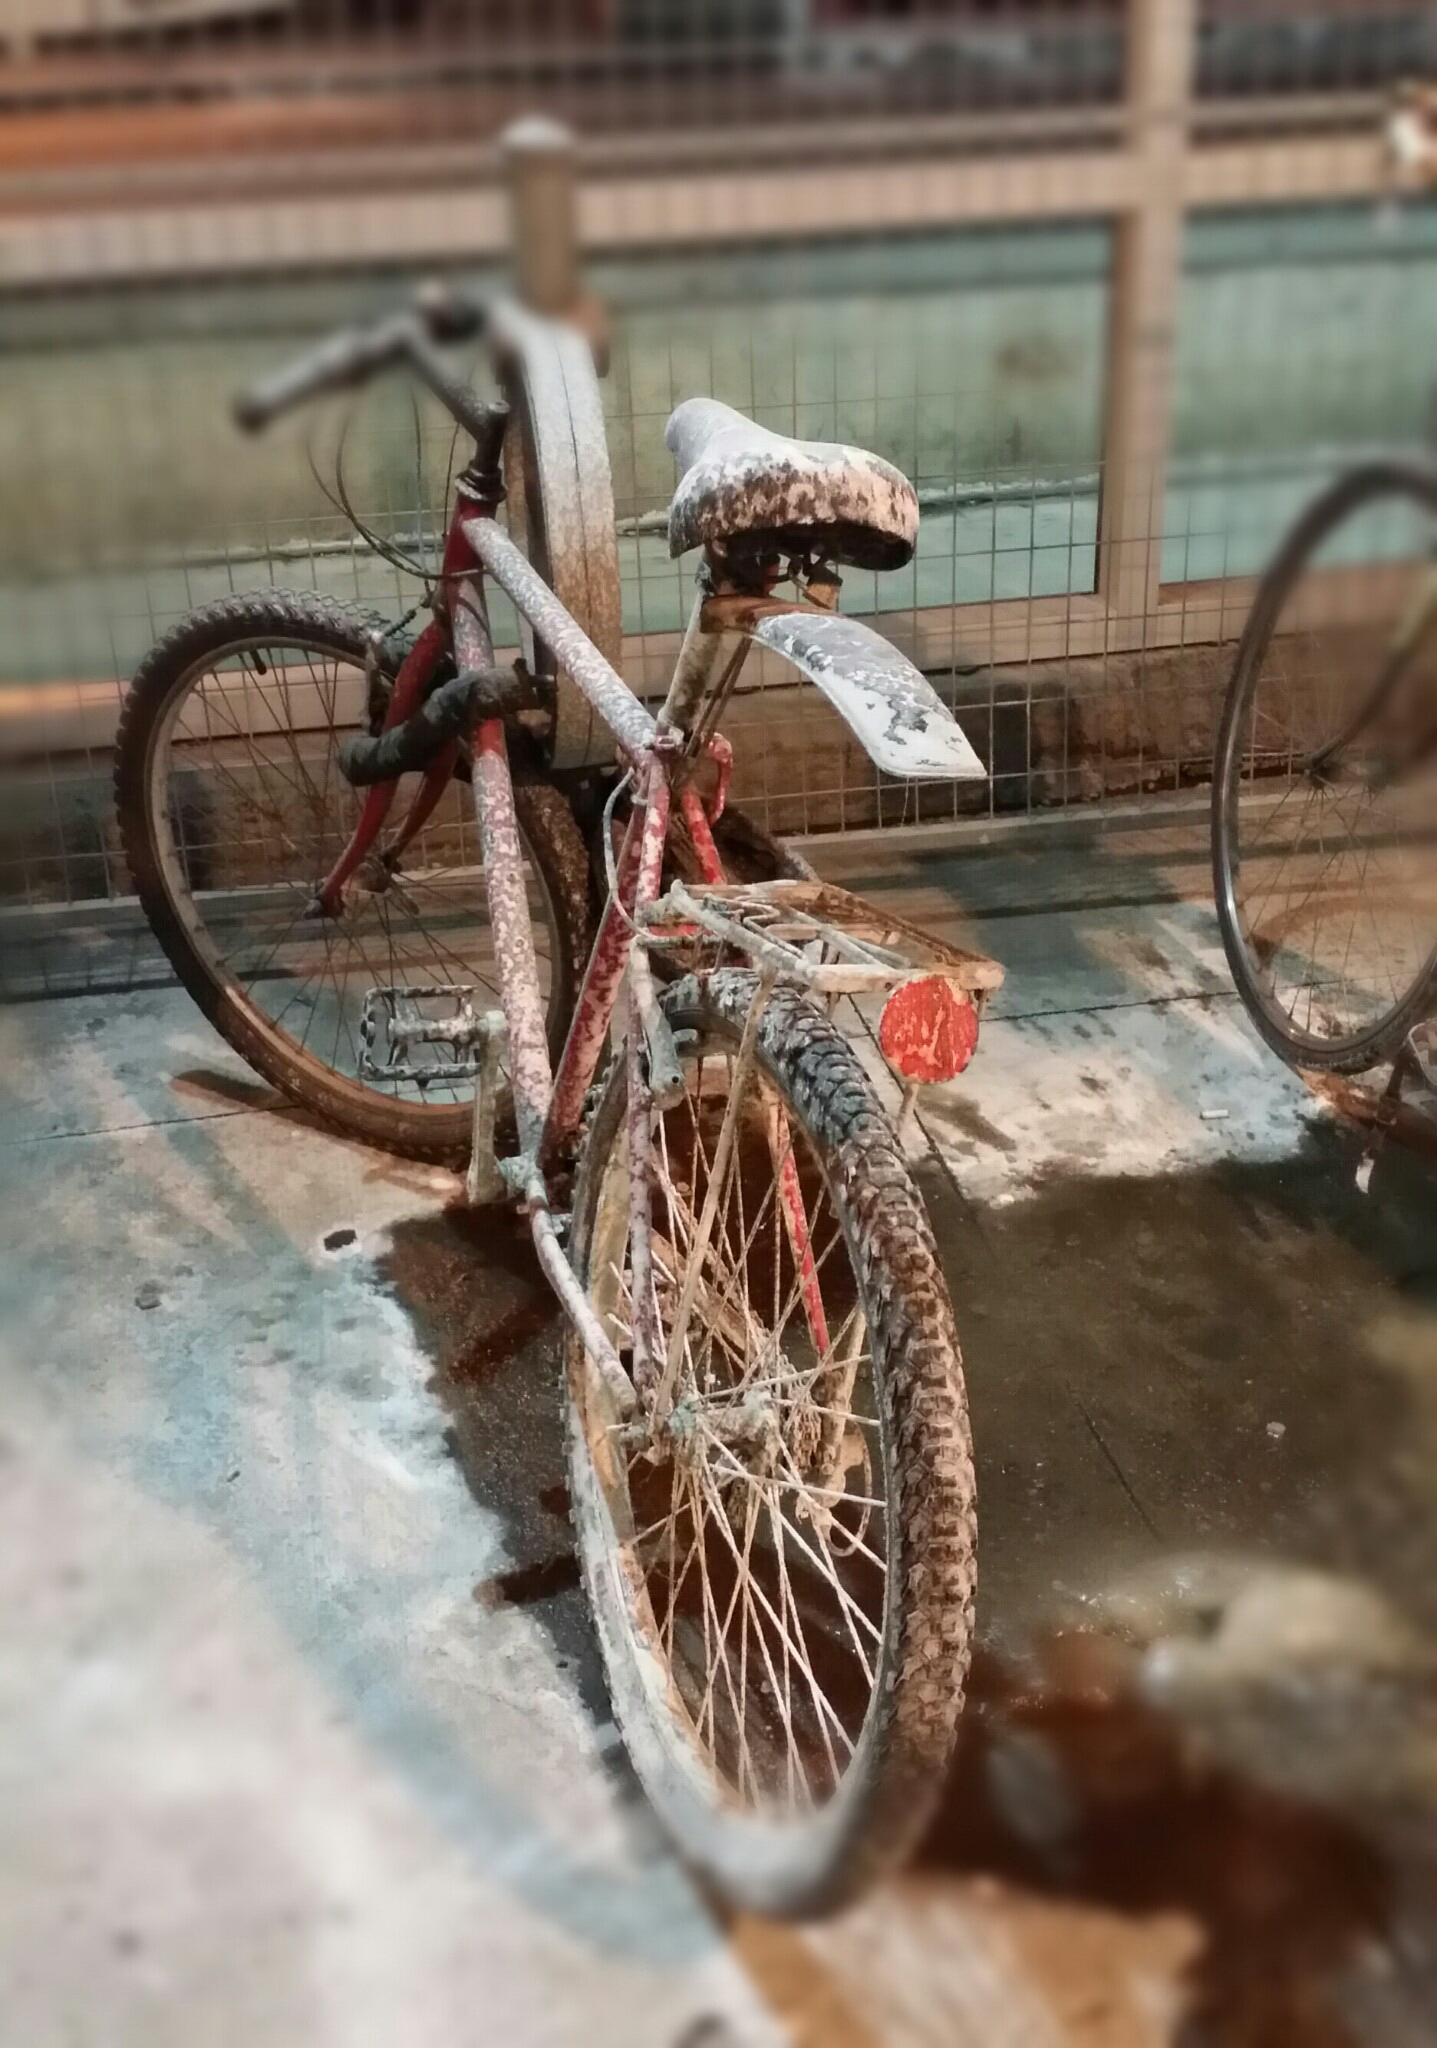 Urban transportation - dirty bike at Union Station By Nicky Jameson